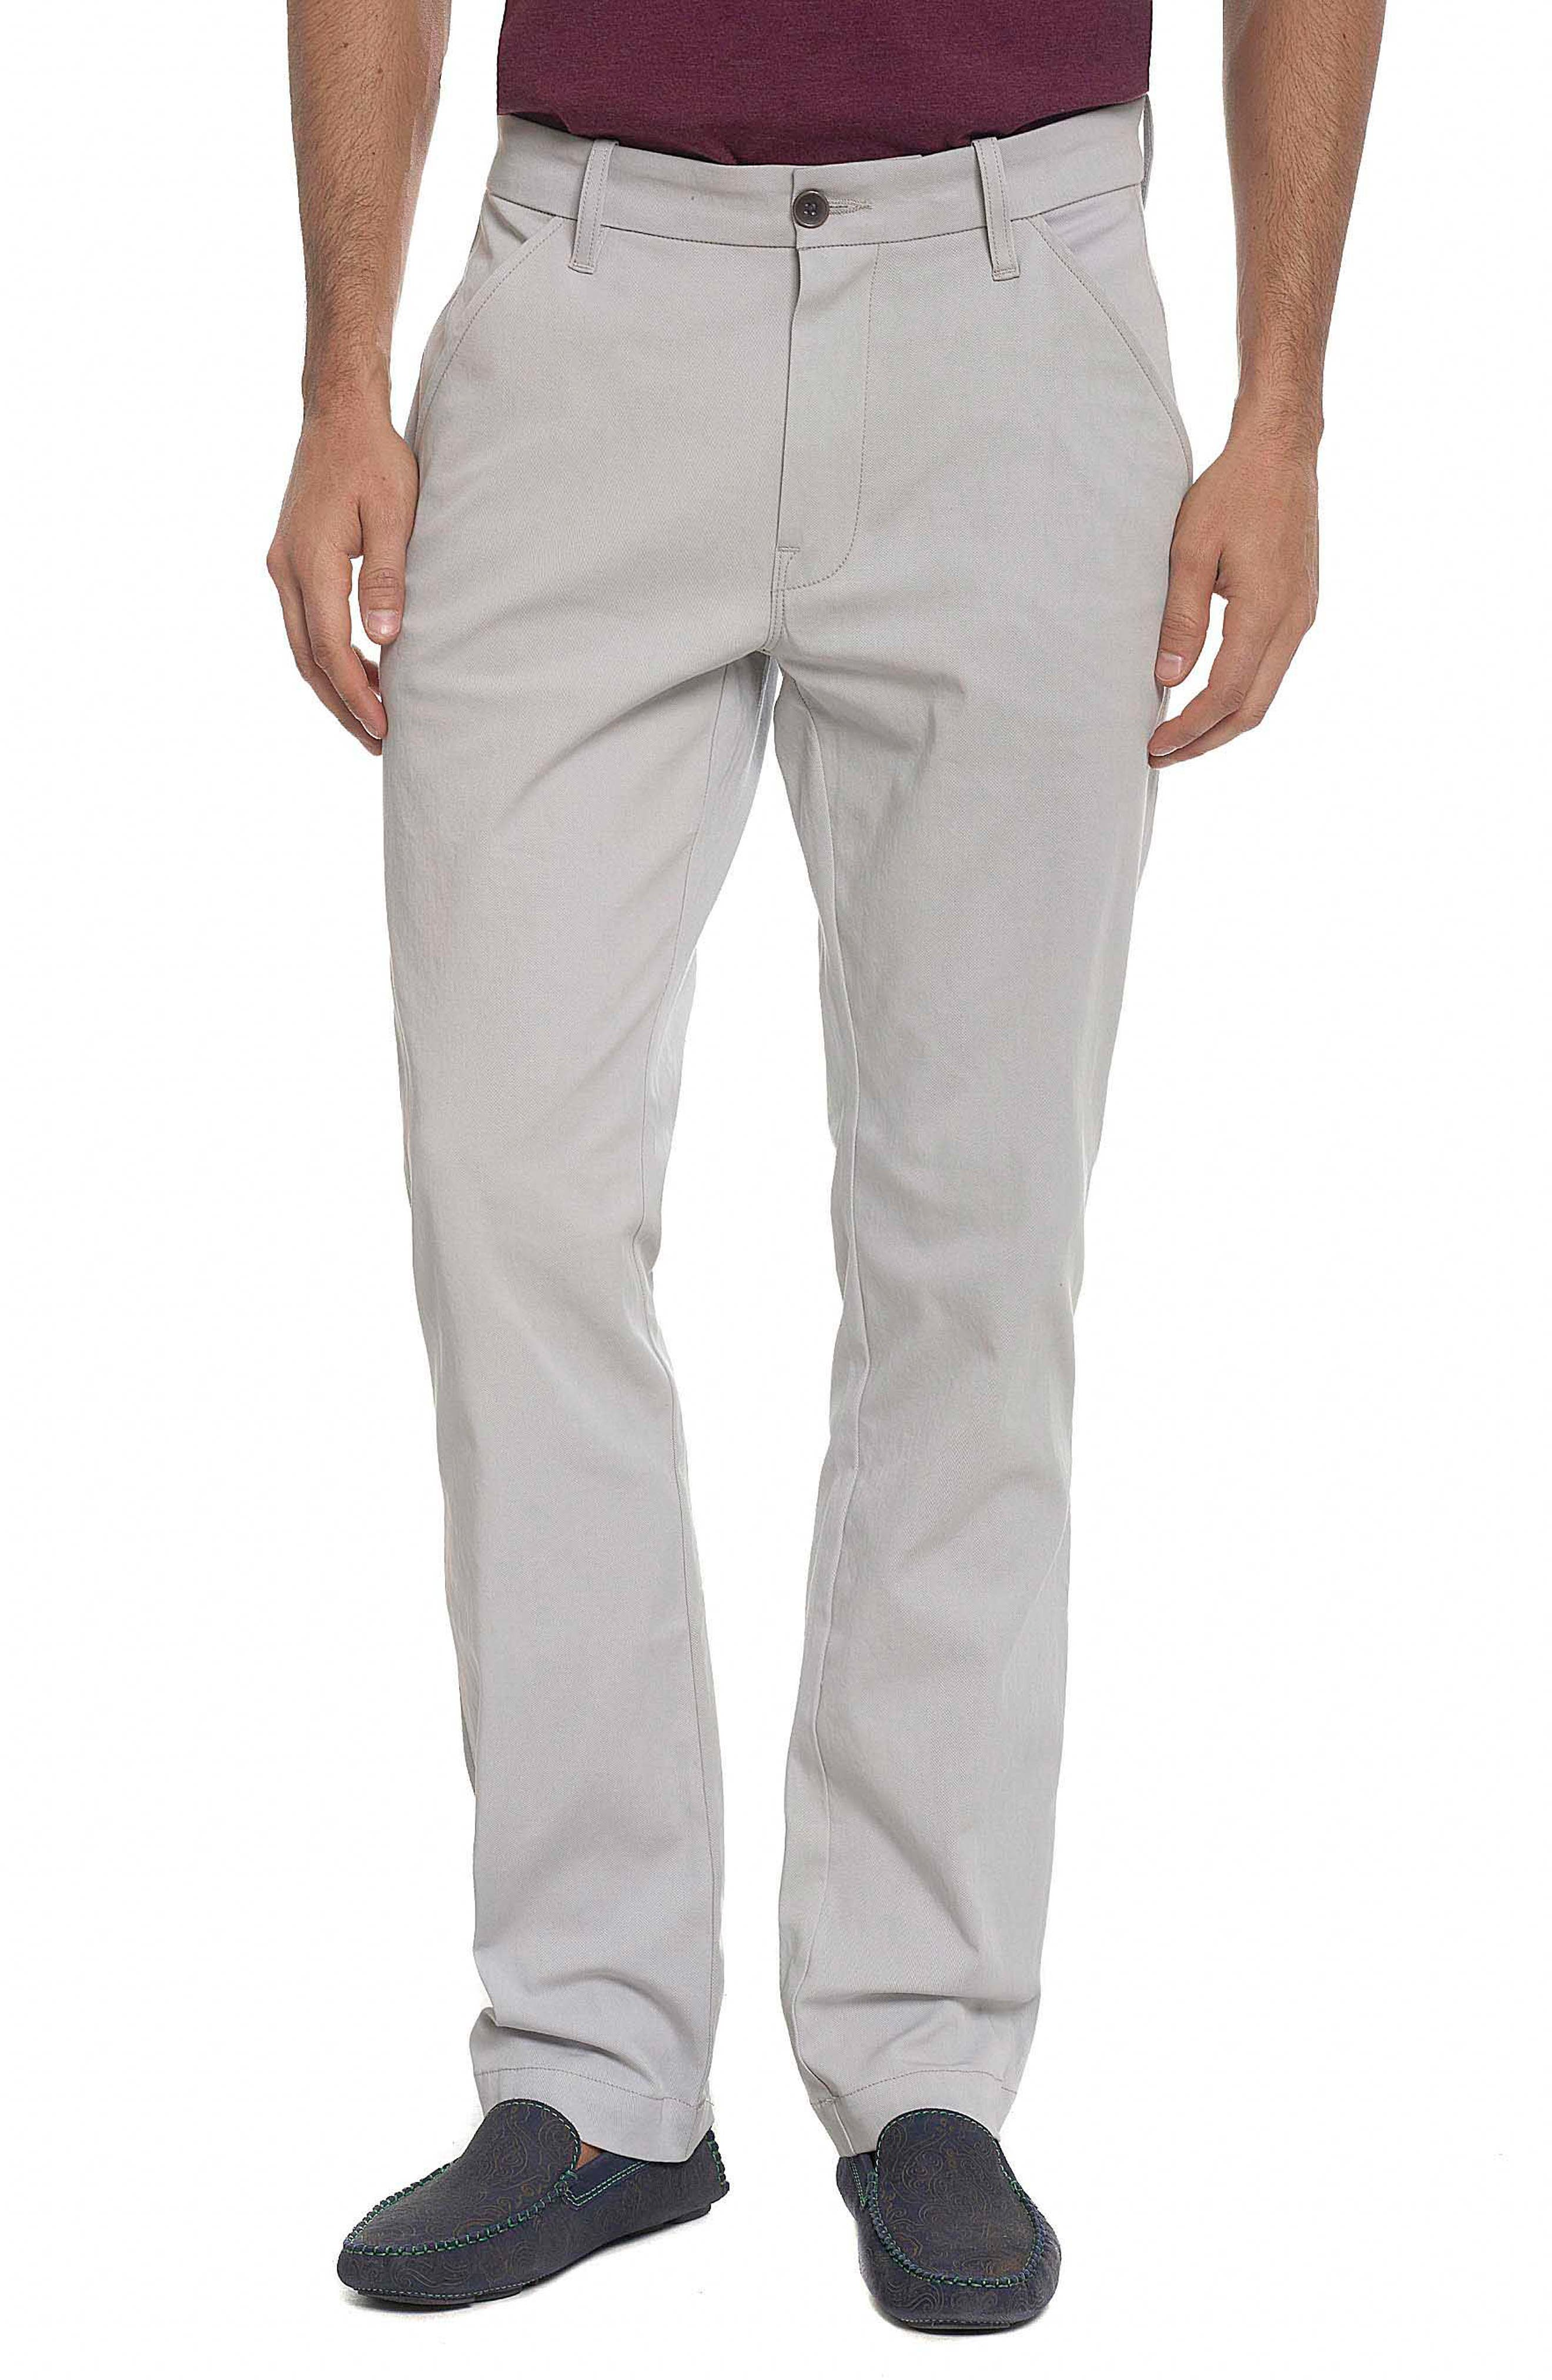 Layton Tailored Fit Stretch Cotton Pants,                             Main thumbnail 1, color,